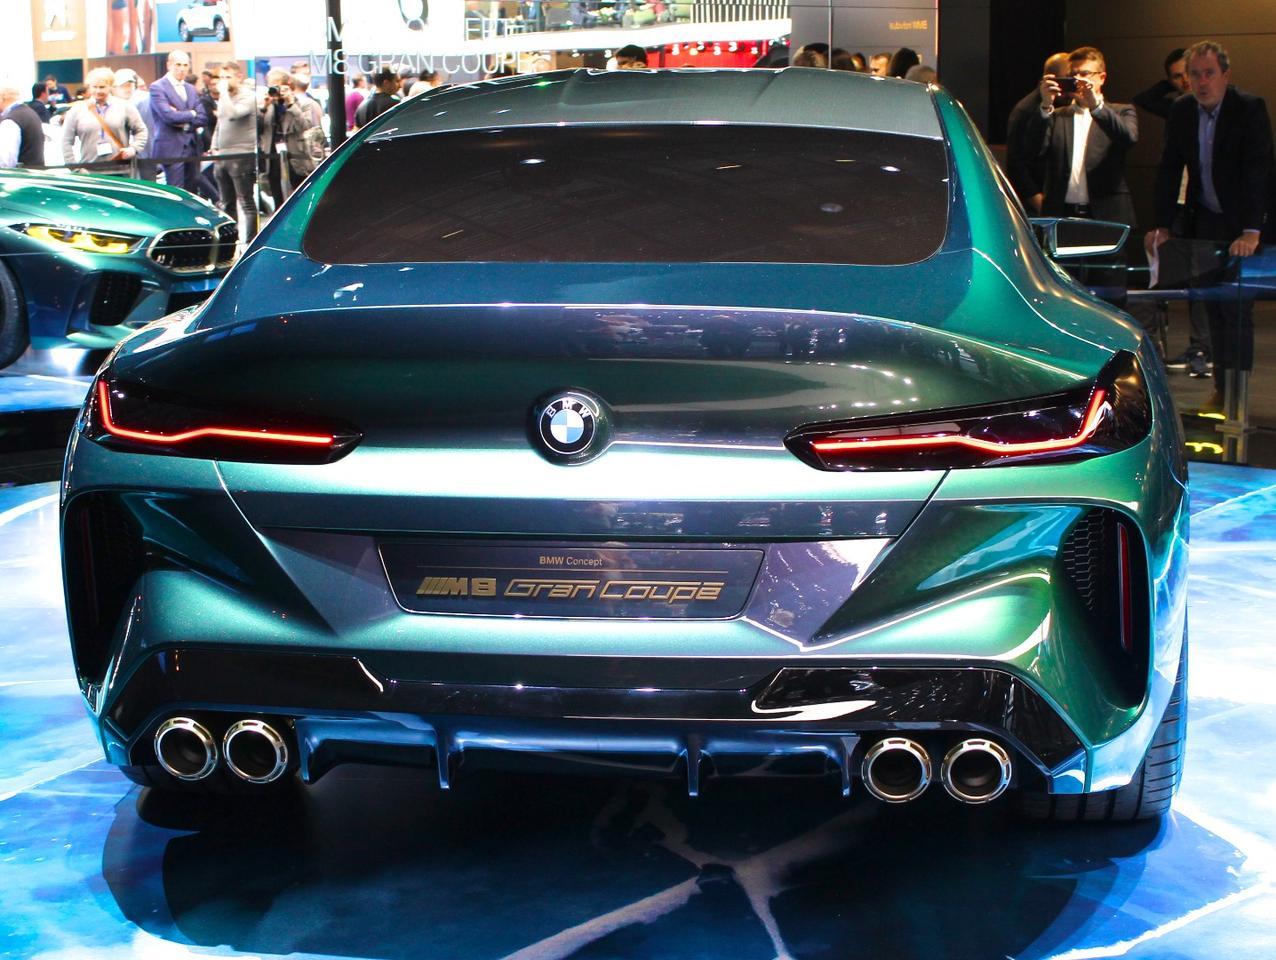 A fastback-styled rear with a pronounced aero lip defines the rear of the BMW M8 Gran Coupe concept